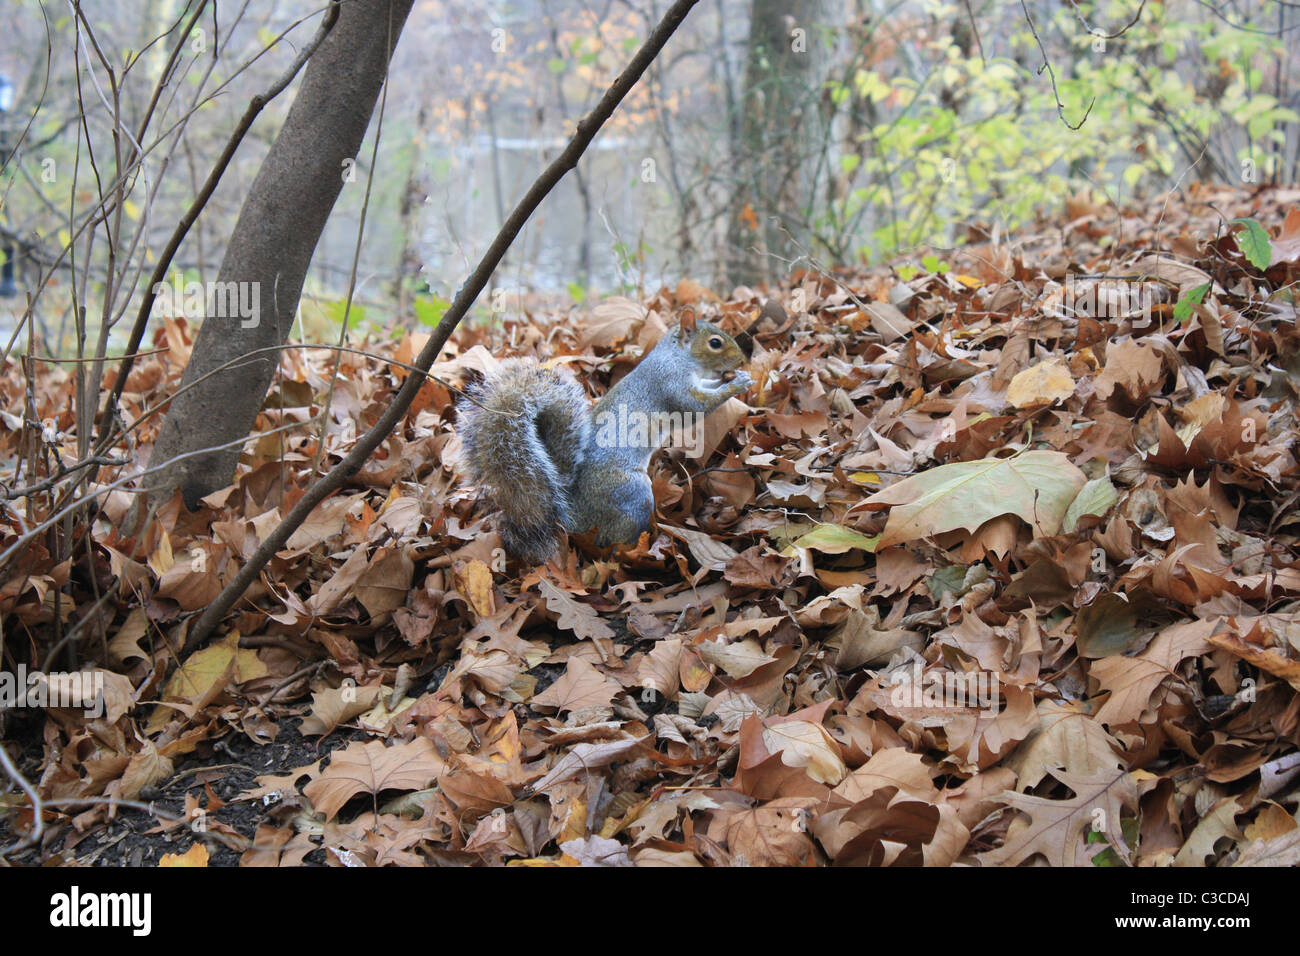 grey squirrel in the park at autumn - Stock Image